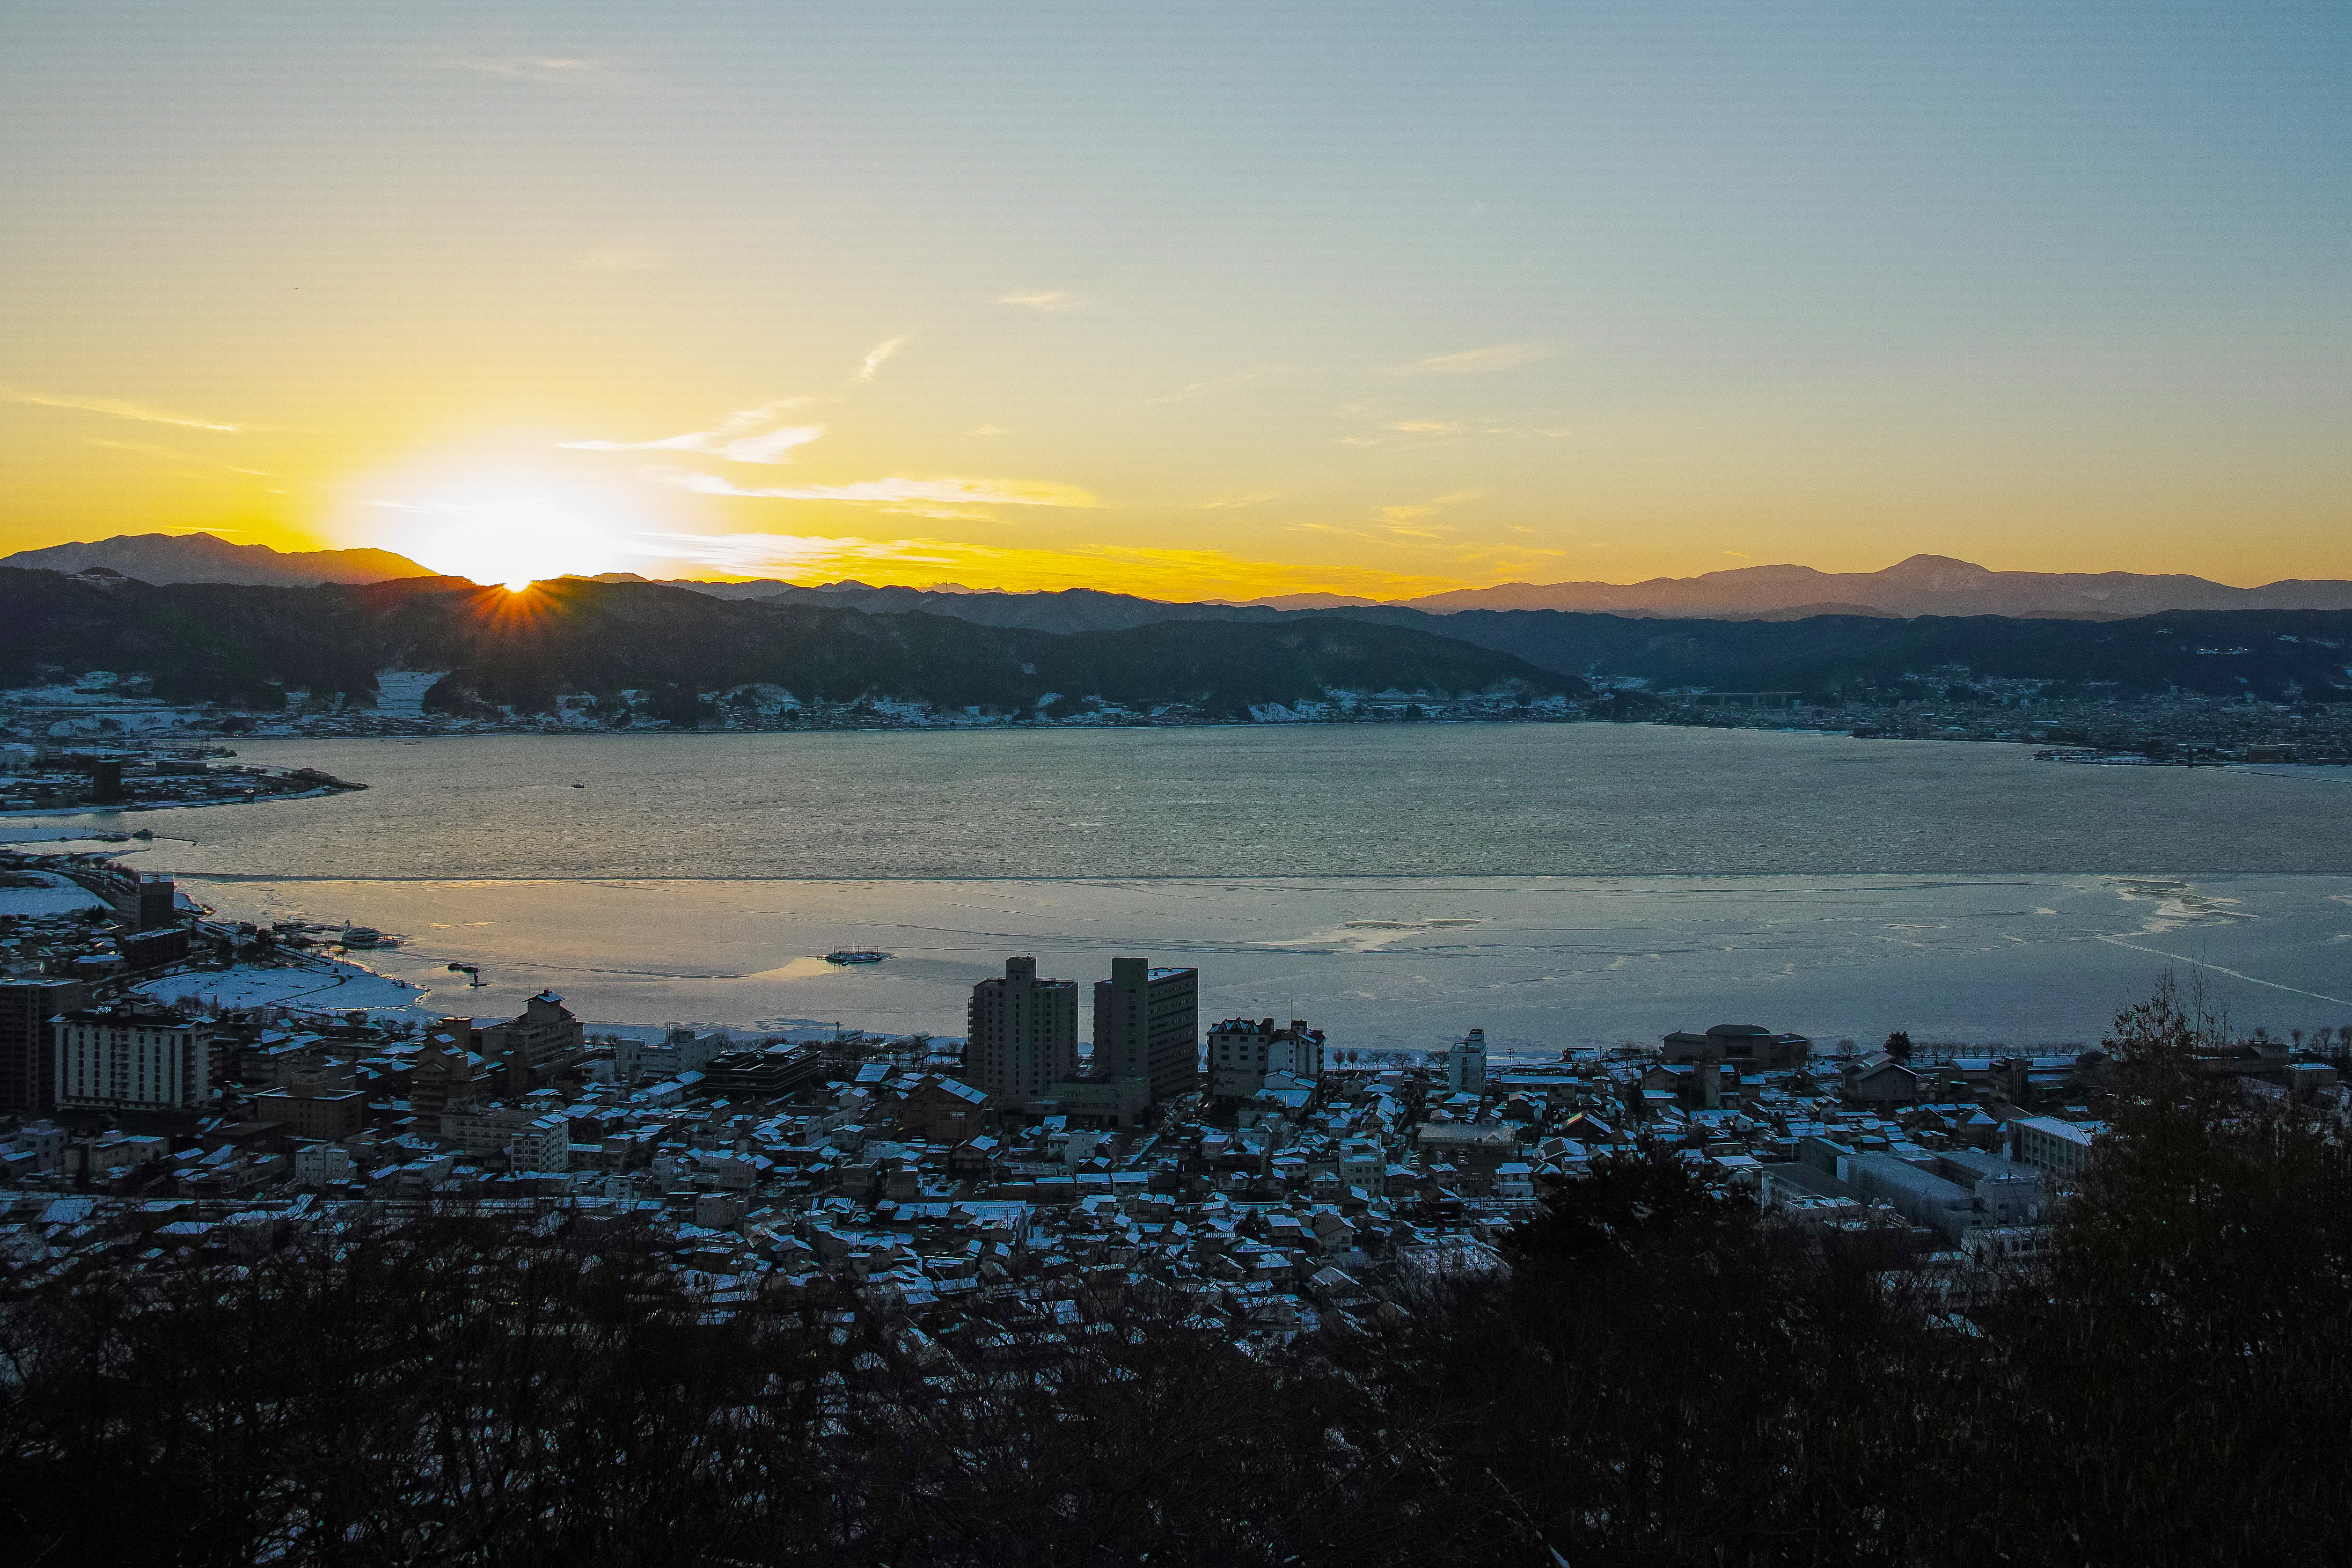 A sunset over Lake Suwa in the winter